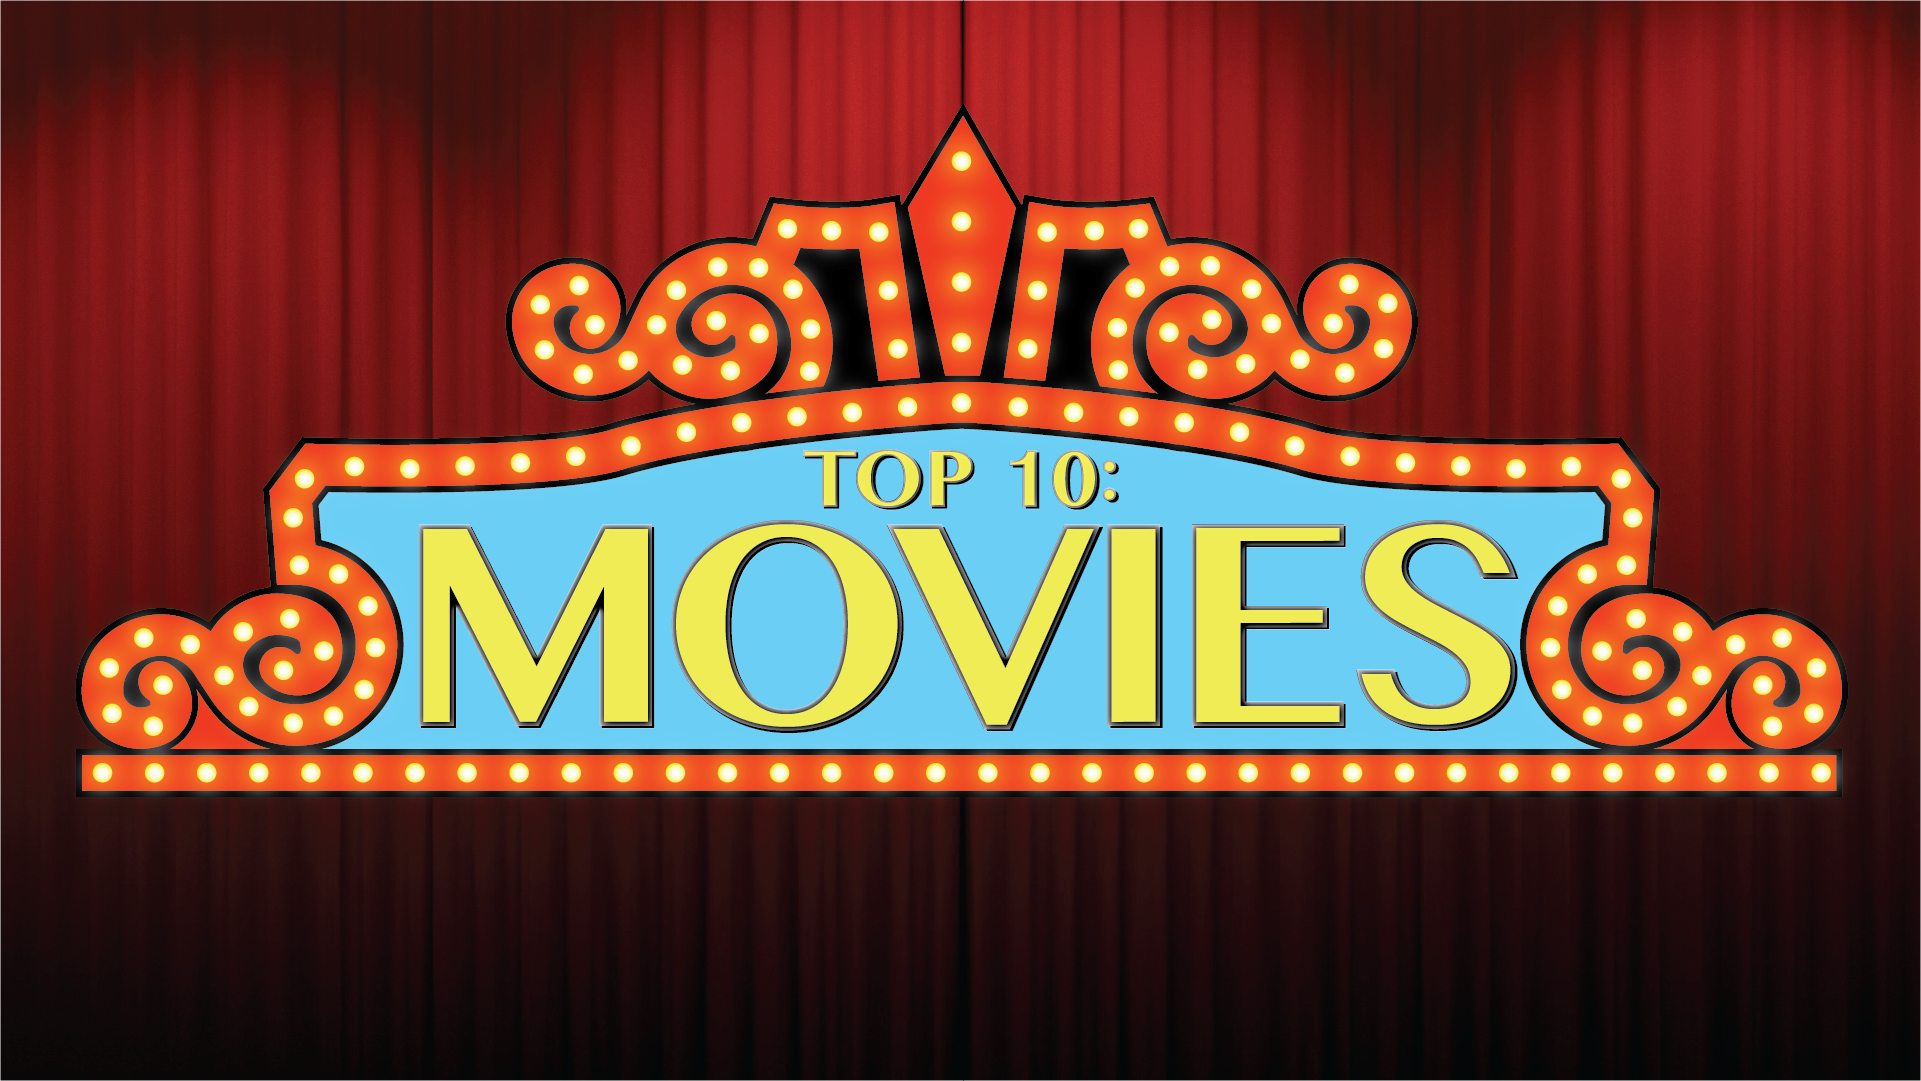 Top 10: Movies